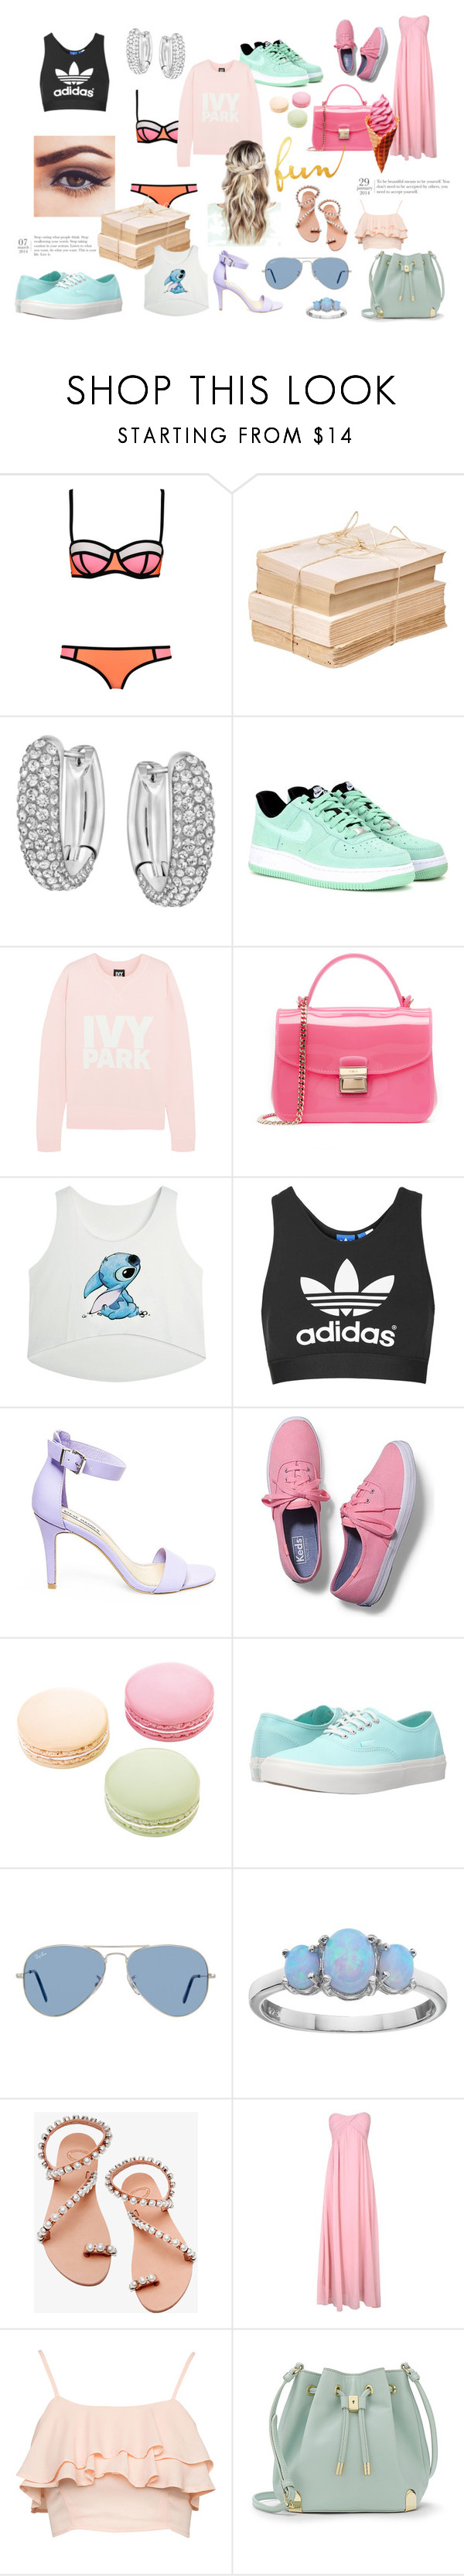 """Things I Love"" by lialicious on Polyvore featuring Swarovski, NIKE, Ivy Park, Furla, Topshop, Steve Madden, Keds, Ladurée, Vans and Ray-Ban"